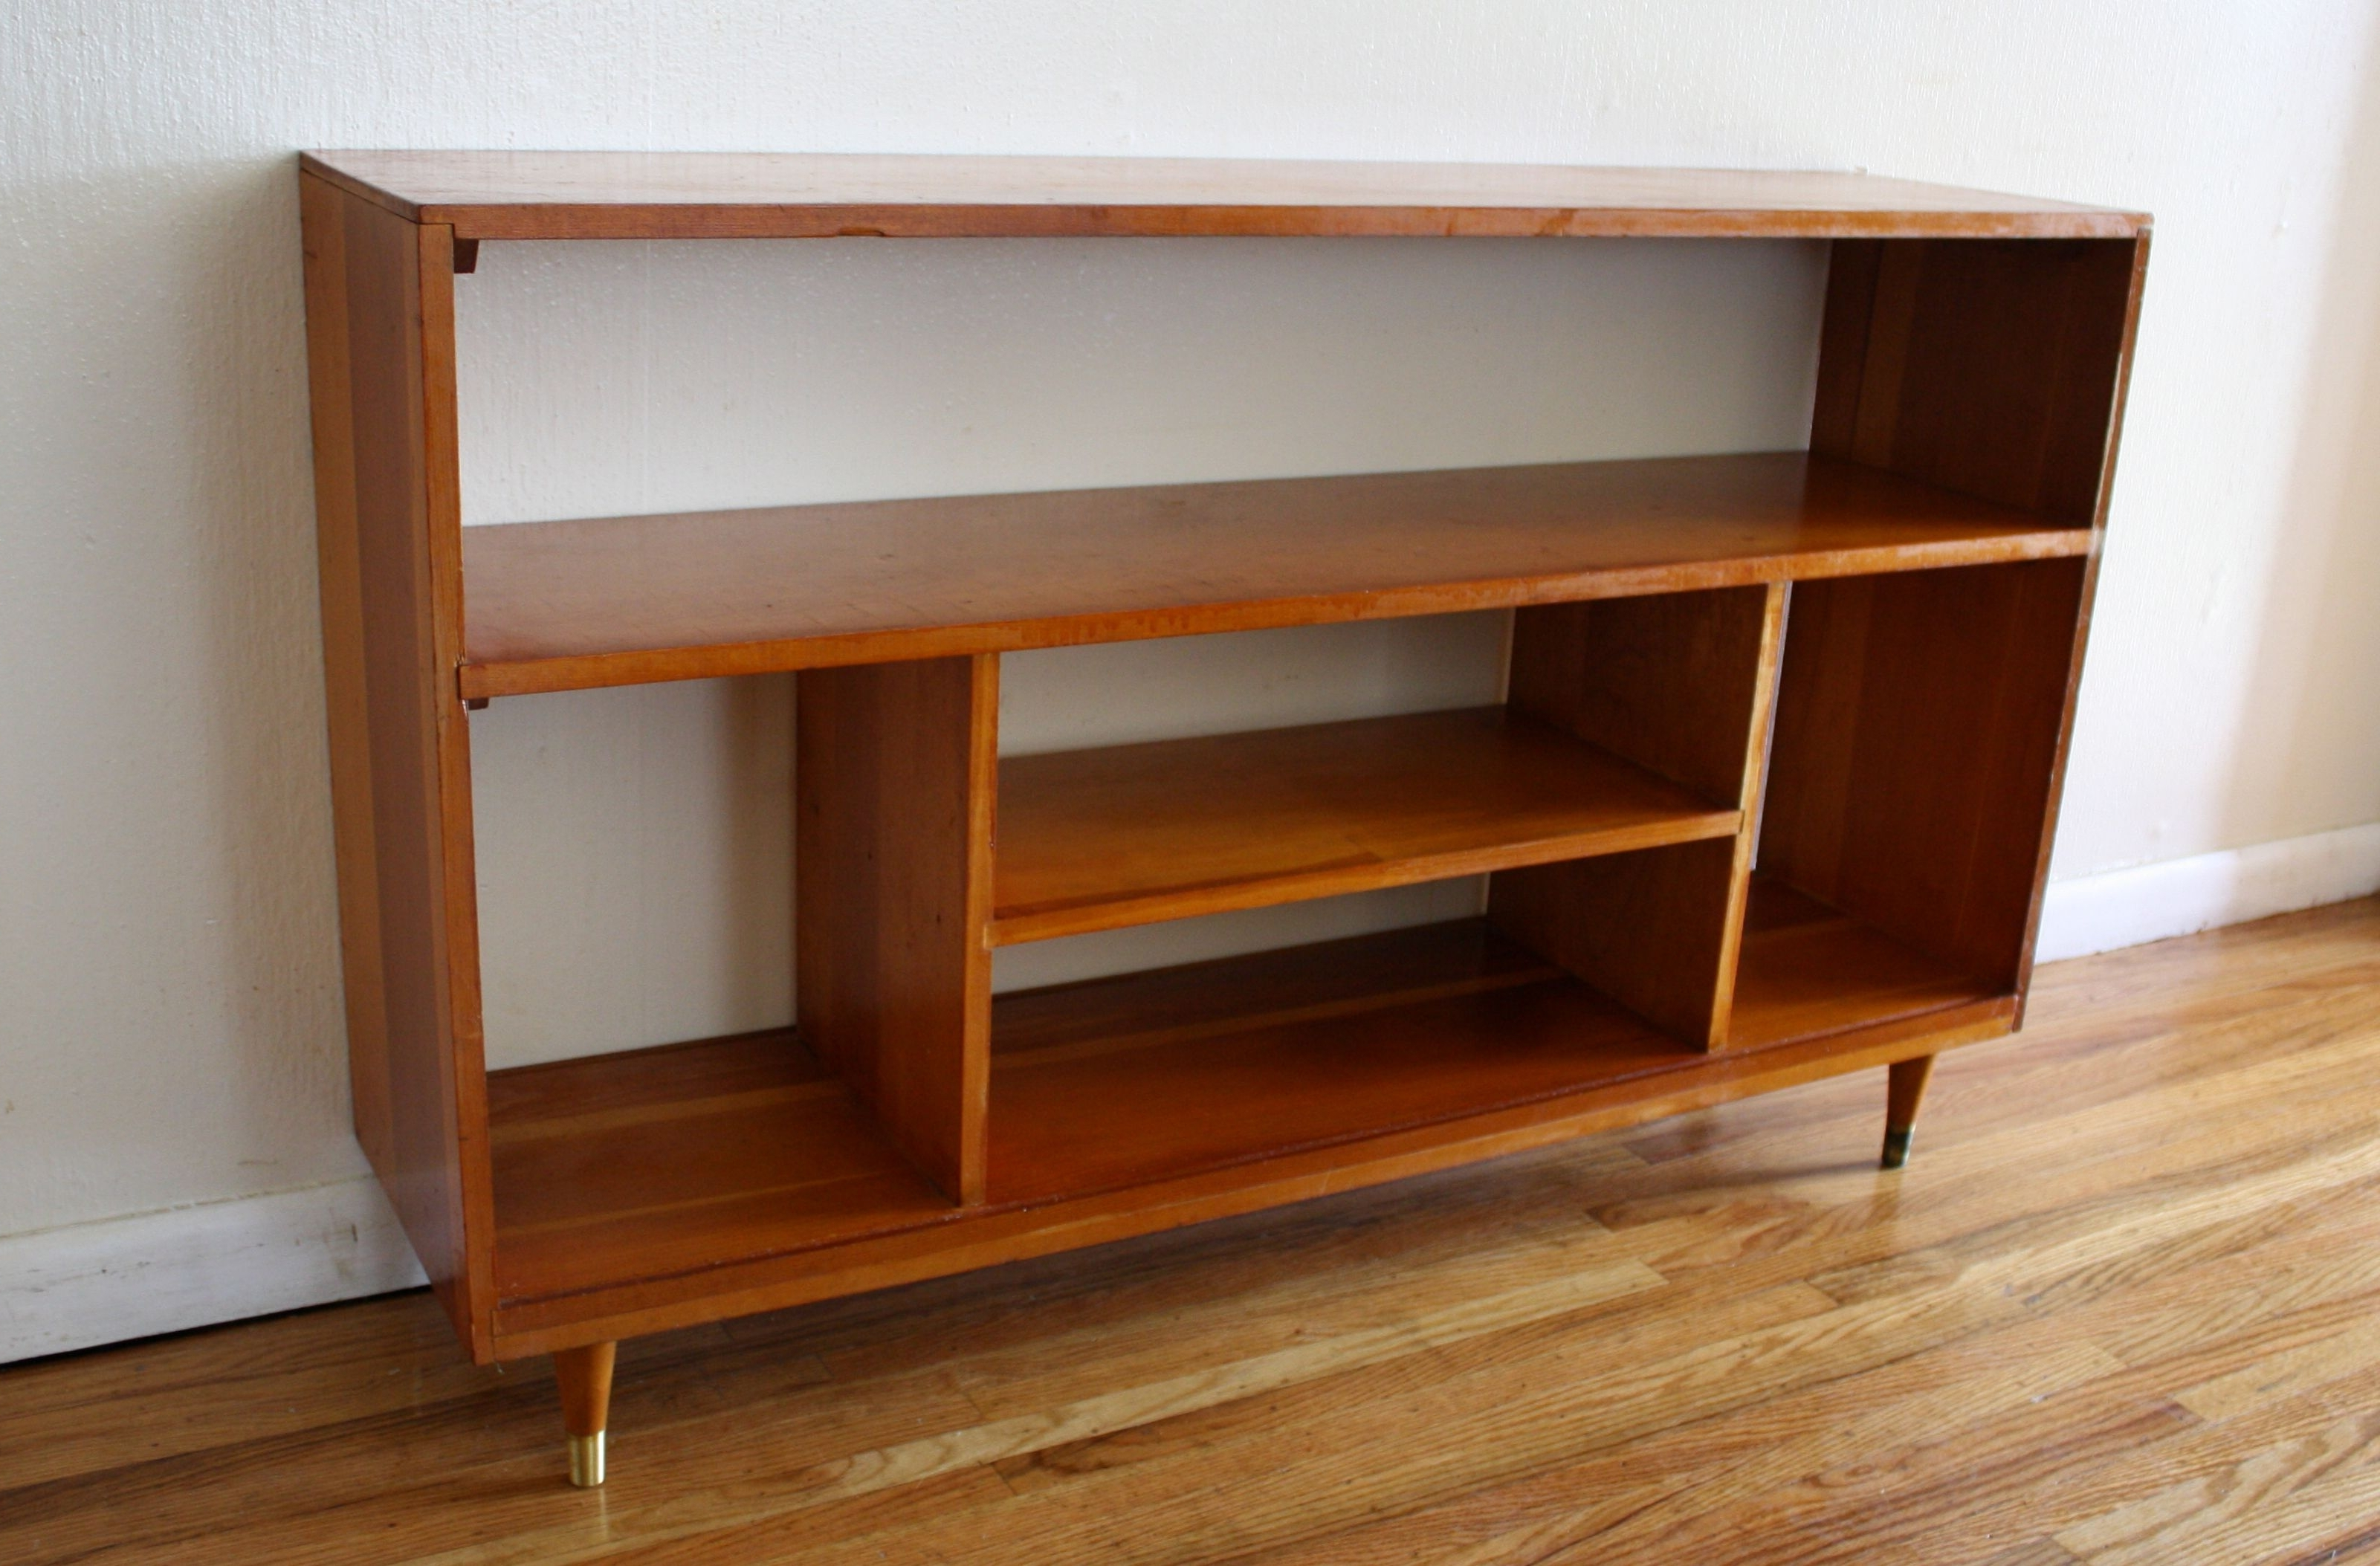 Favorite Humby Decoration Mid Century Modern Bookshelf Storage Style Intended For Mid Century Bookcases (View 5 of 15)